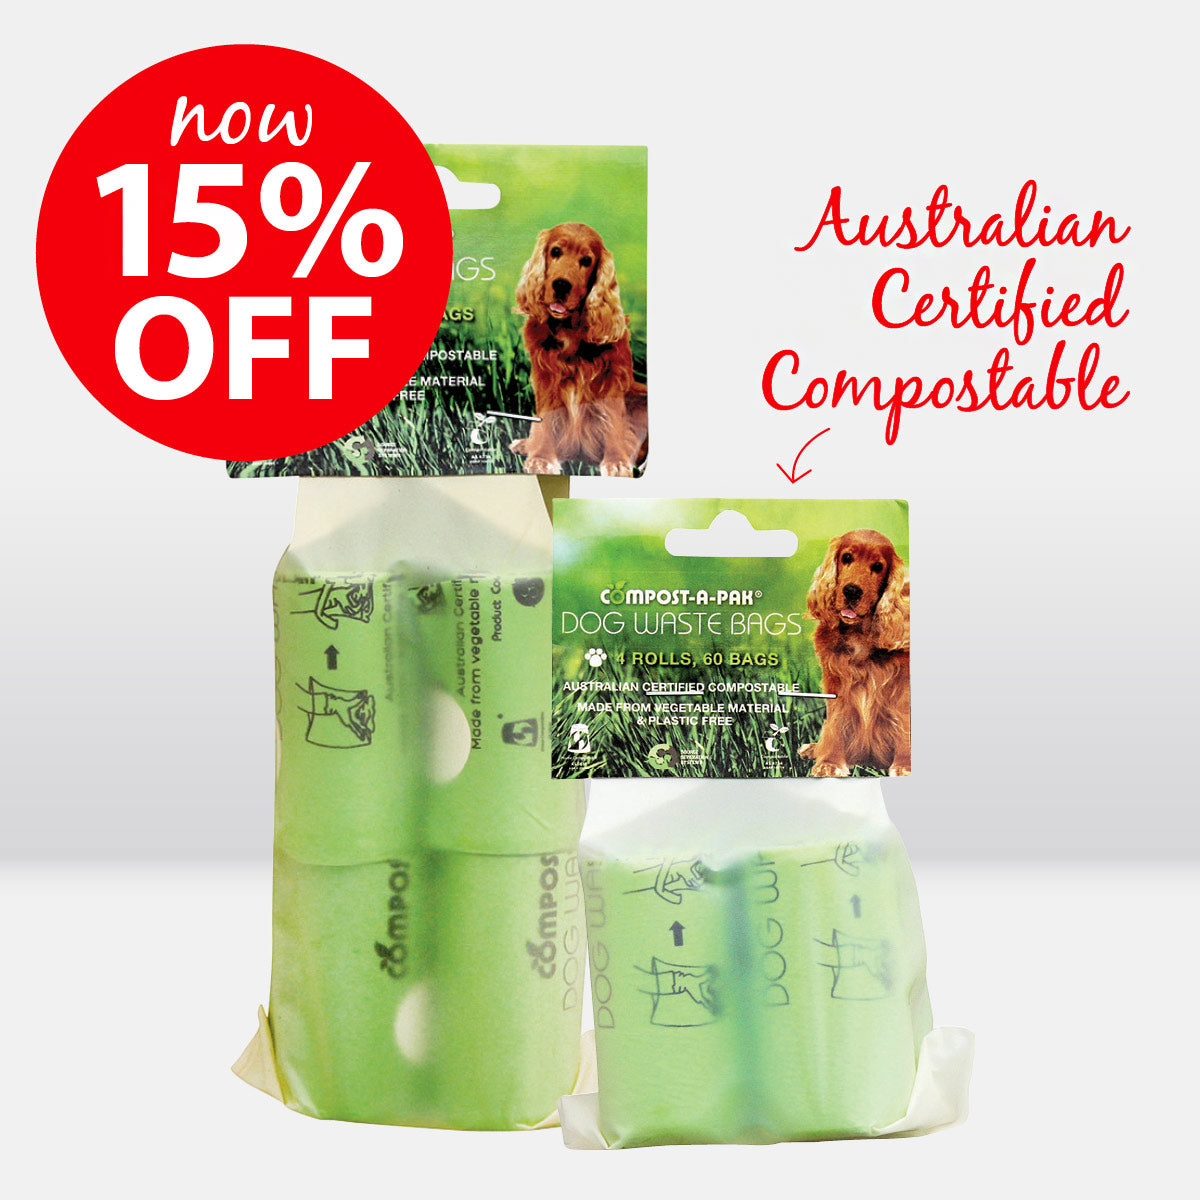 Compost-A-Pak Home Compostable Biodegradable Dog Poop Bags ON SALE NOW